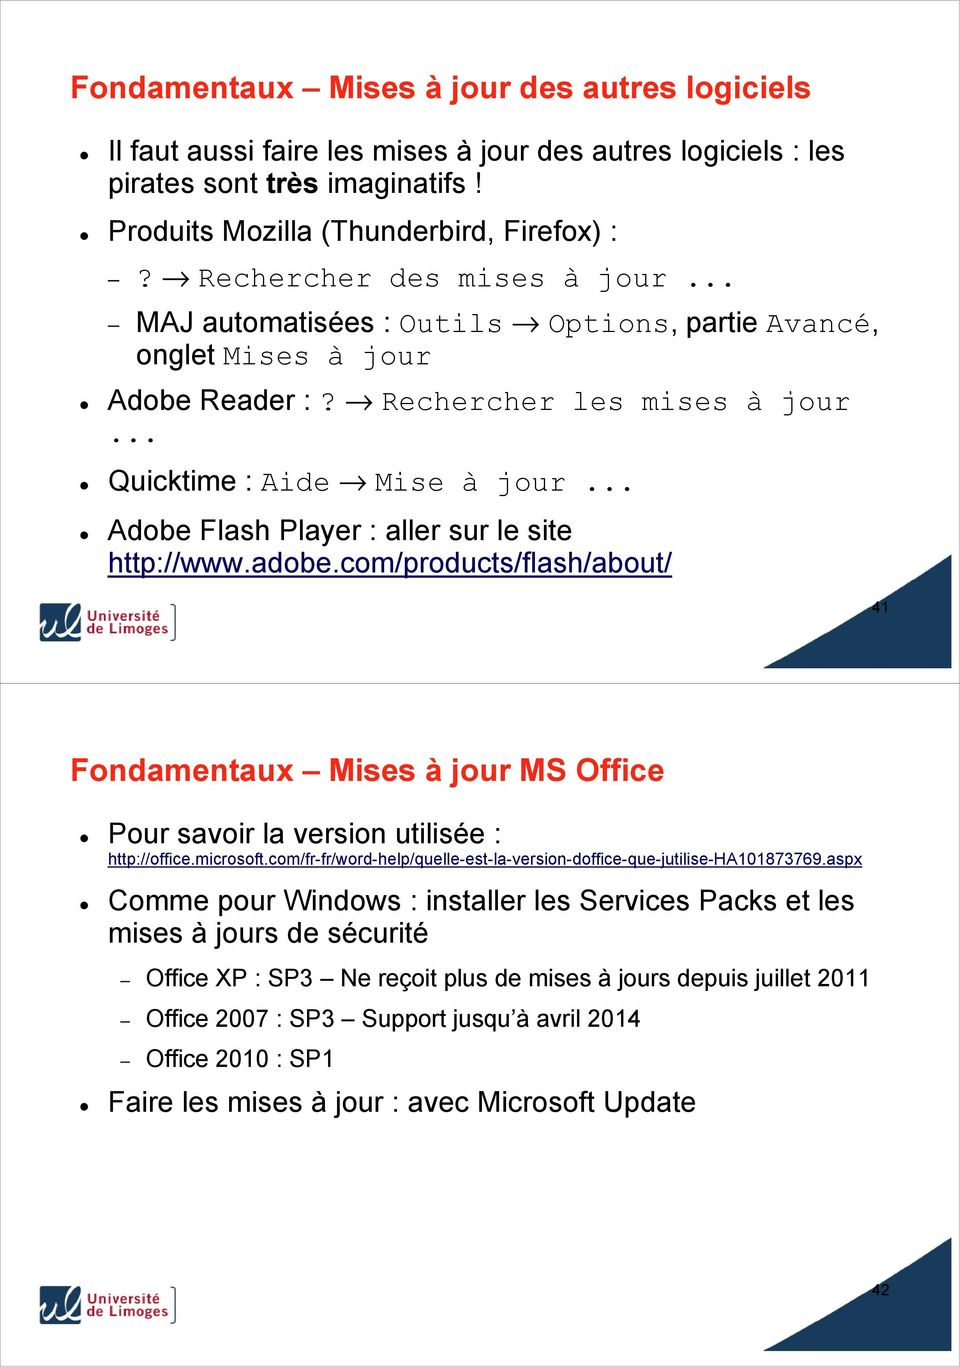 .. Adobe Flash Player : aller sur le site http://www.adobe.com/products/flash/about/ 41 Fondamentaux Mises à jour MS Office Pour savoir la version utilisée : http://office.microsoft.